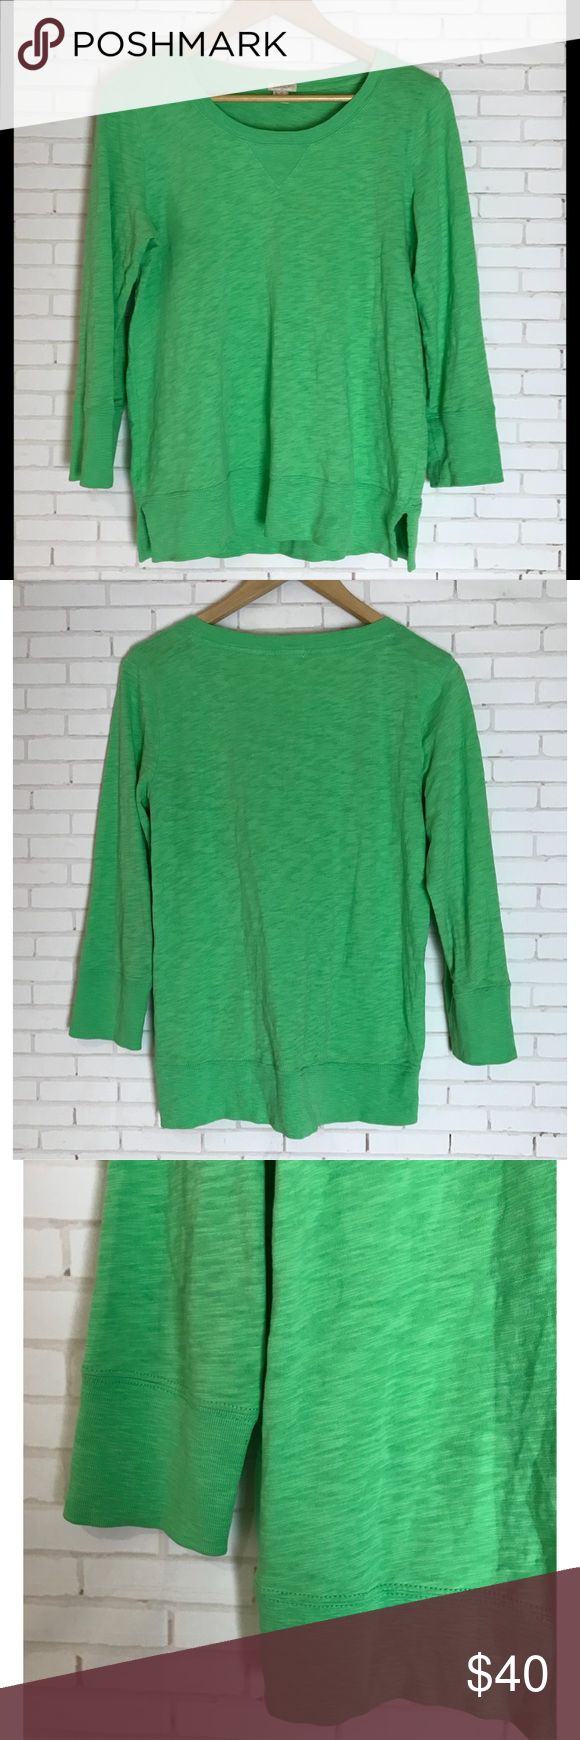 J. Crew Green Sweatshirt Women's Size Small J. Crew garment dyed cotton sweatshirt in color green with a slight heathered texture. Slouchy Fit, 3/4 sleeves. Rib trim at neck, sleeves and hem. Size small. J. Crew Tops Sweatshirts & Hoodies